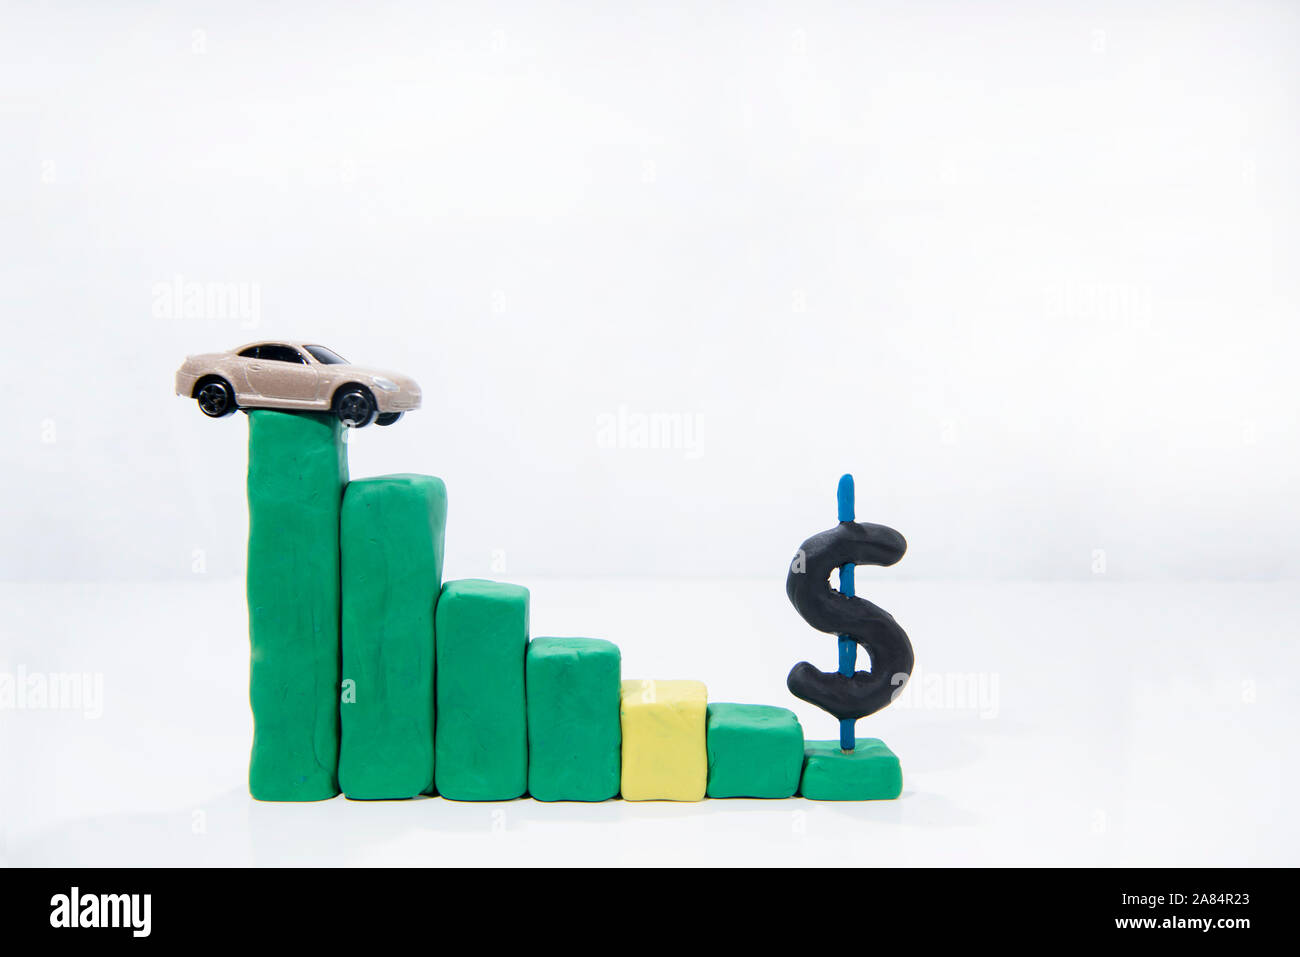 Abstract composition of car prices in auto-market. Isolated on white background. Stock Photo